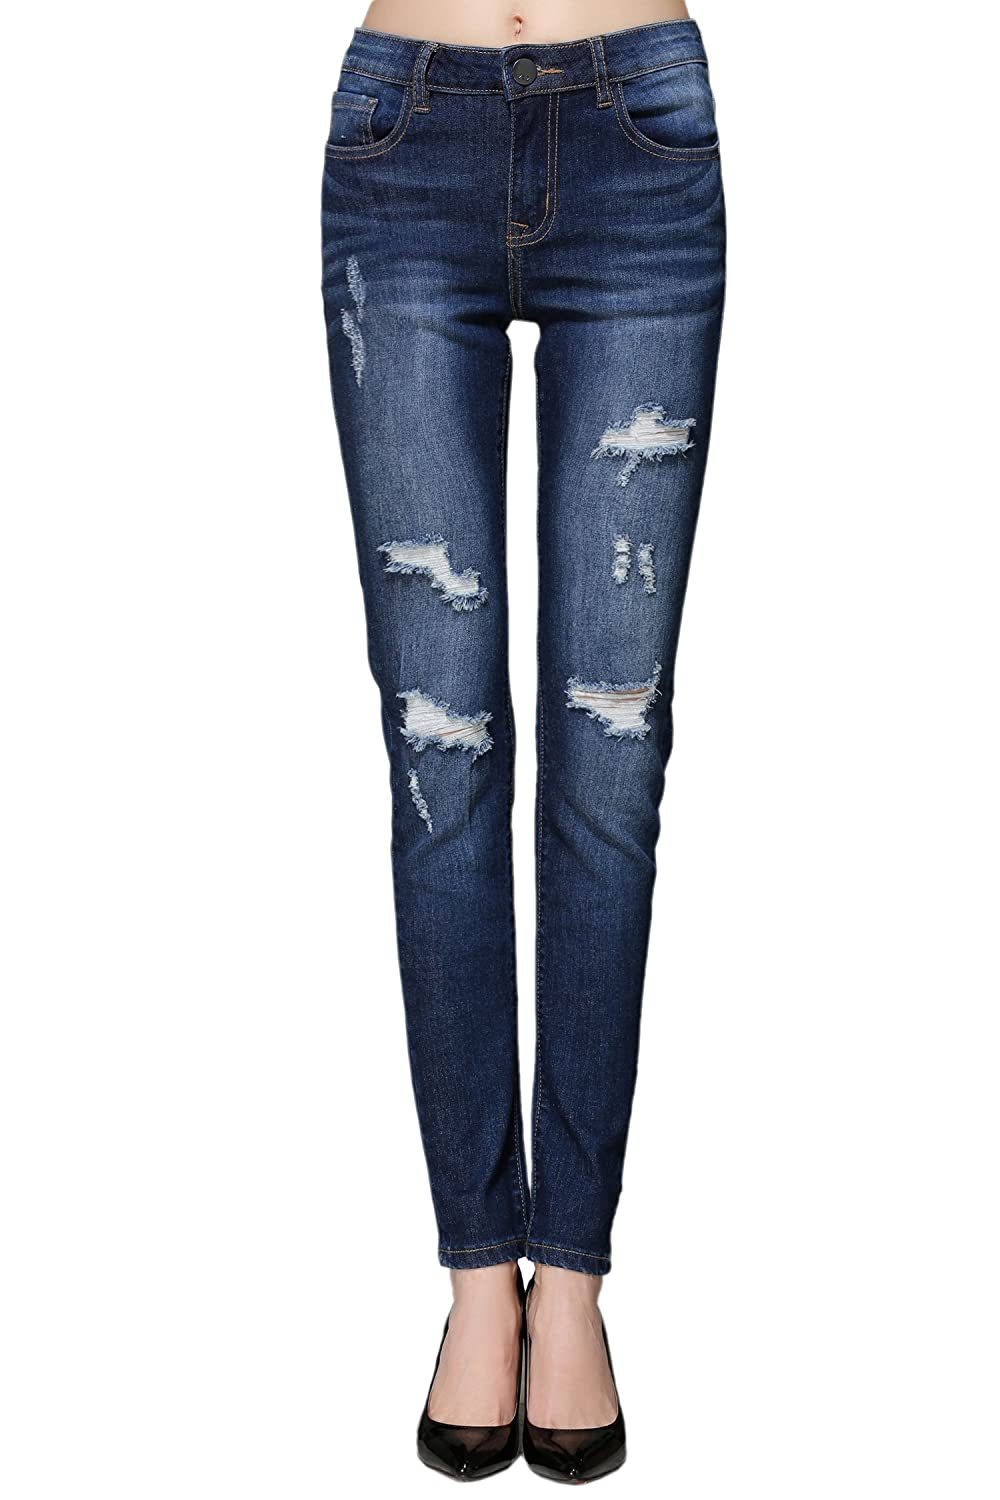 3deac30dc60 ZLZ Butt Lift Skinny Jeans, Women's Casual Destroyed Ripped Distressed  Stretch Jeans Legging. at Amazon Women's Jeans store